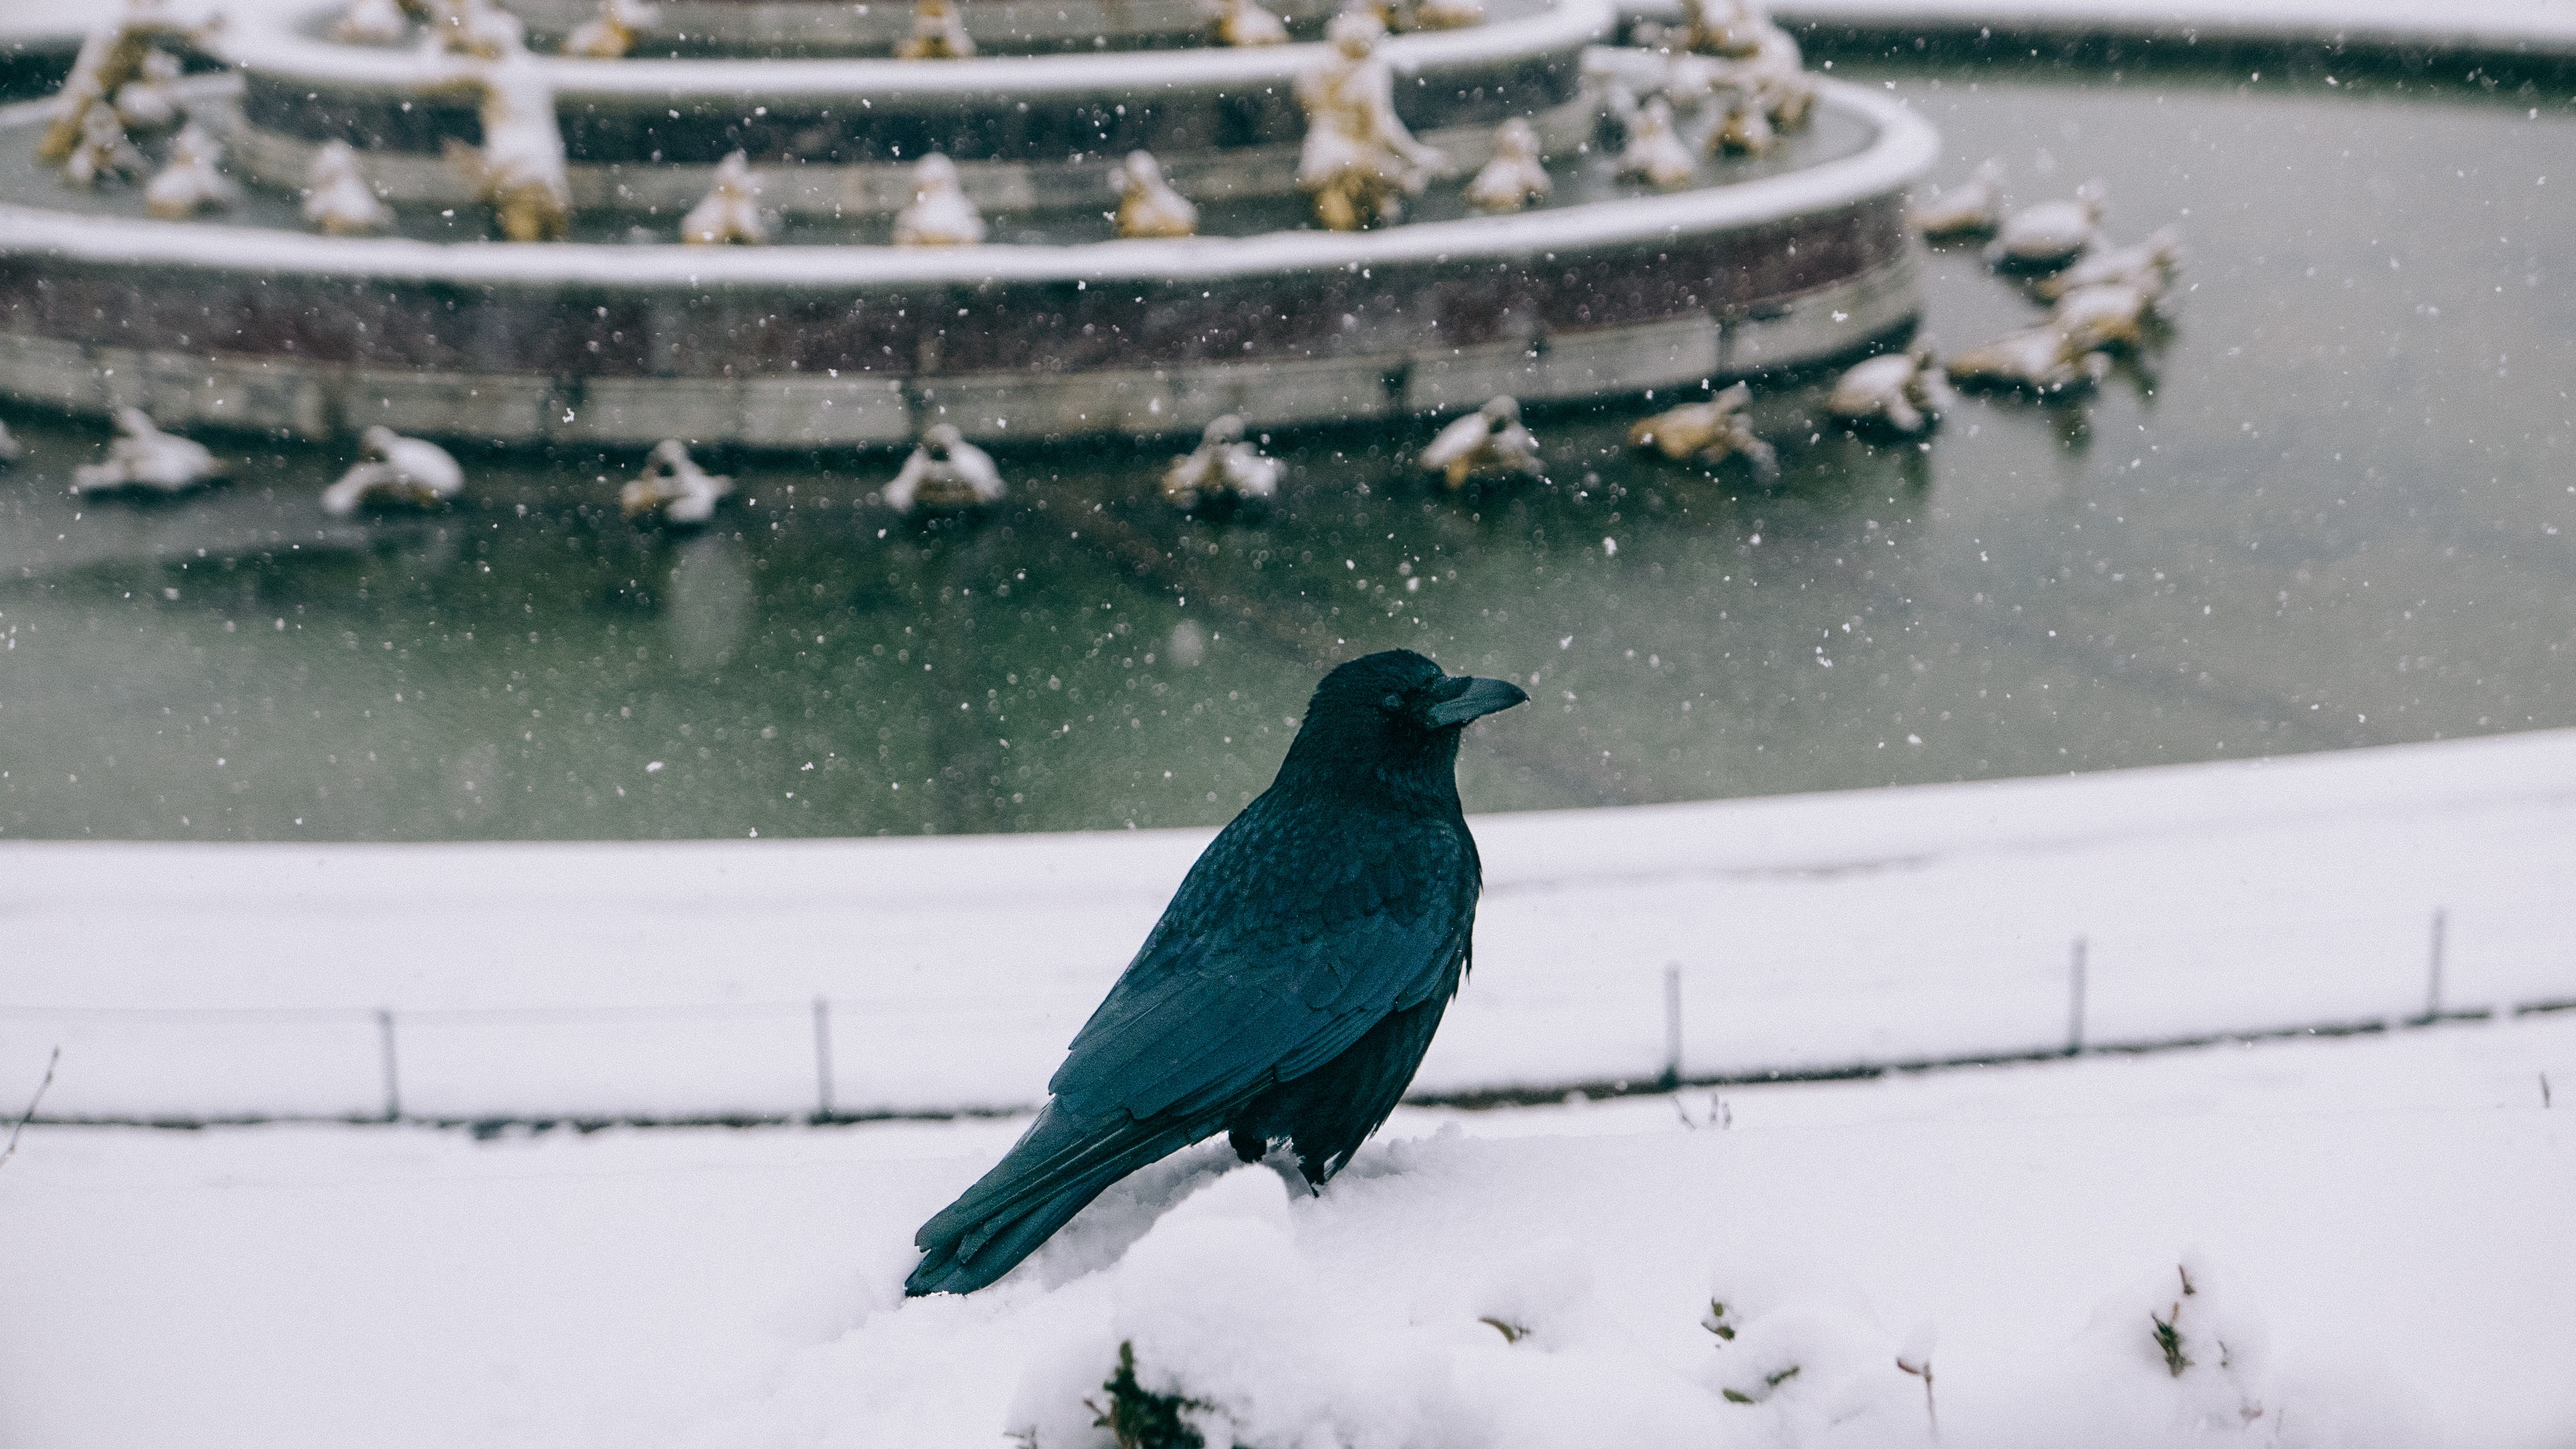 black bird on white surface